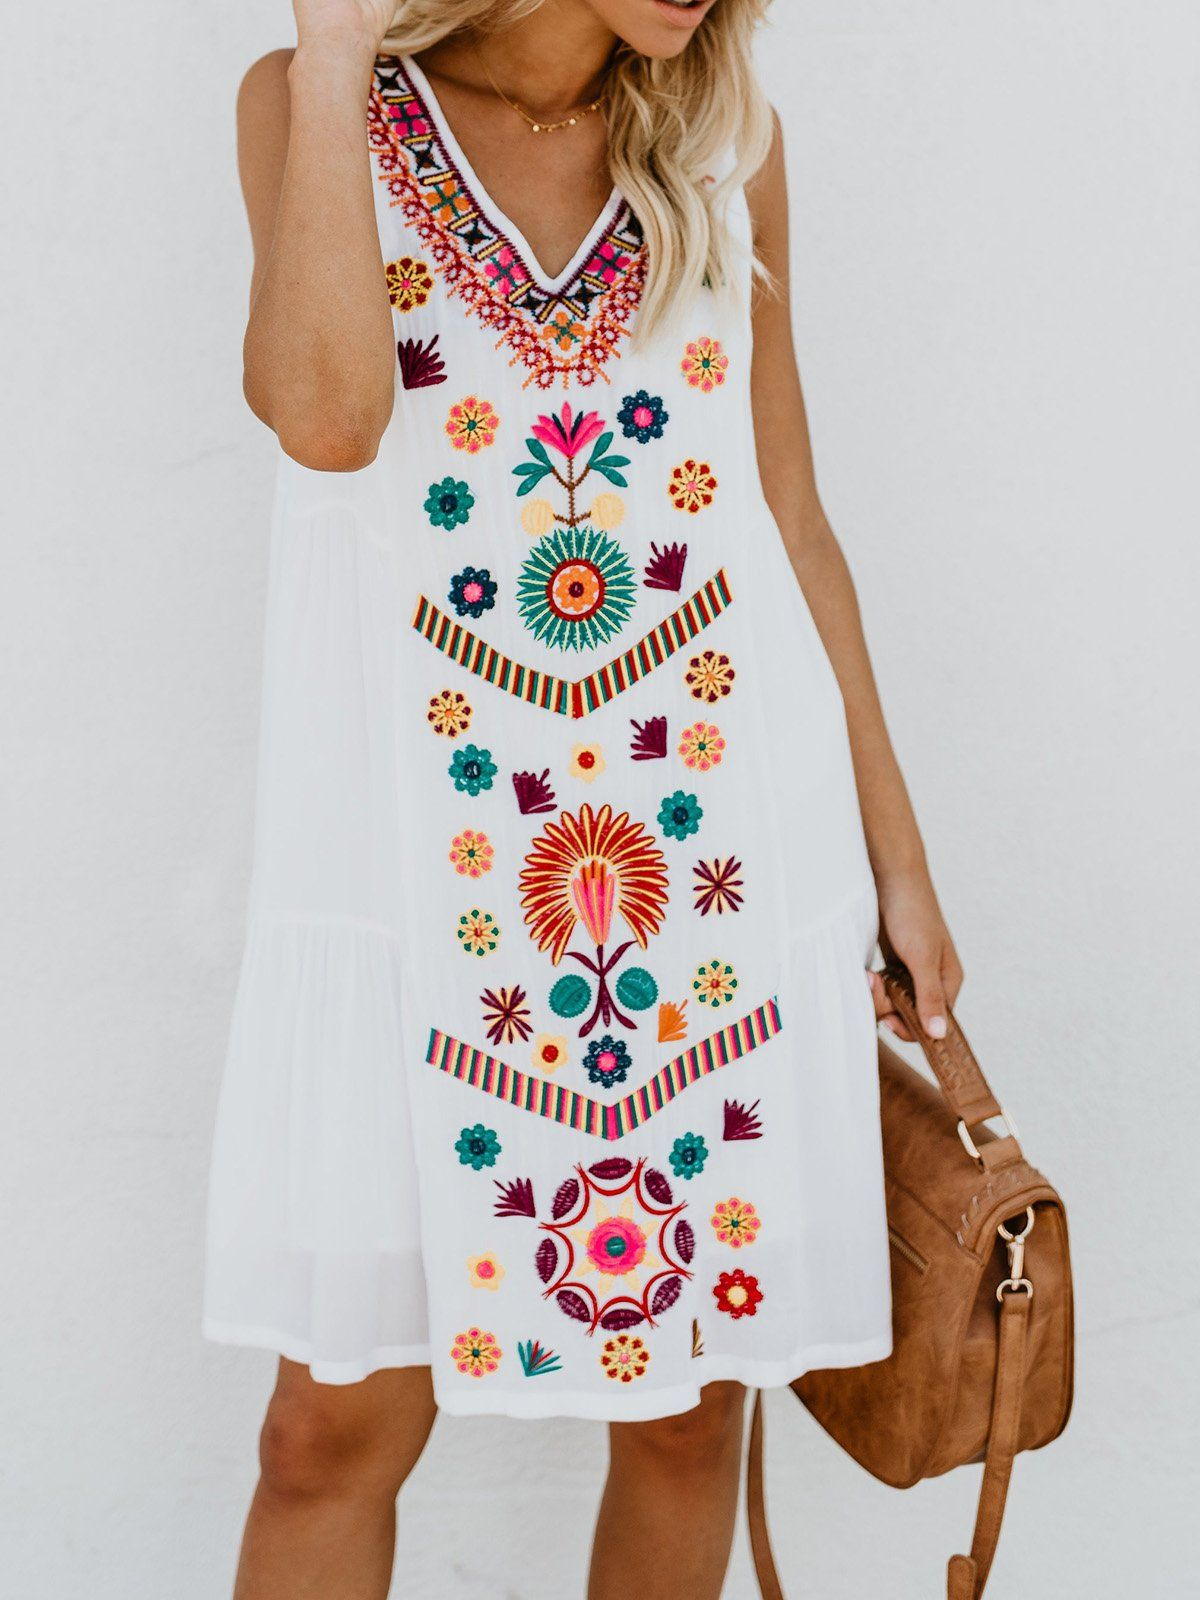 Plus Size White Rayon Floral Casual Summer Mini Dress Summer Dresses For Women Plus Size Outfits Floral Dress Summer [ 1600 x 1200 Pixel ]